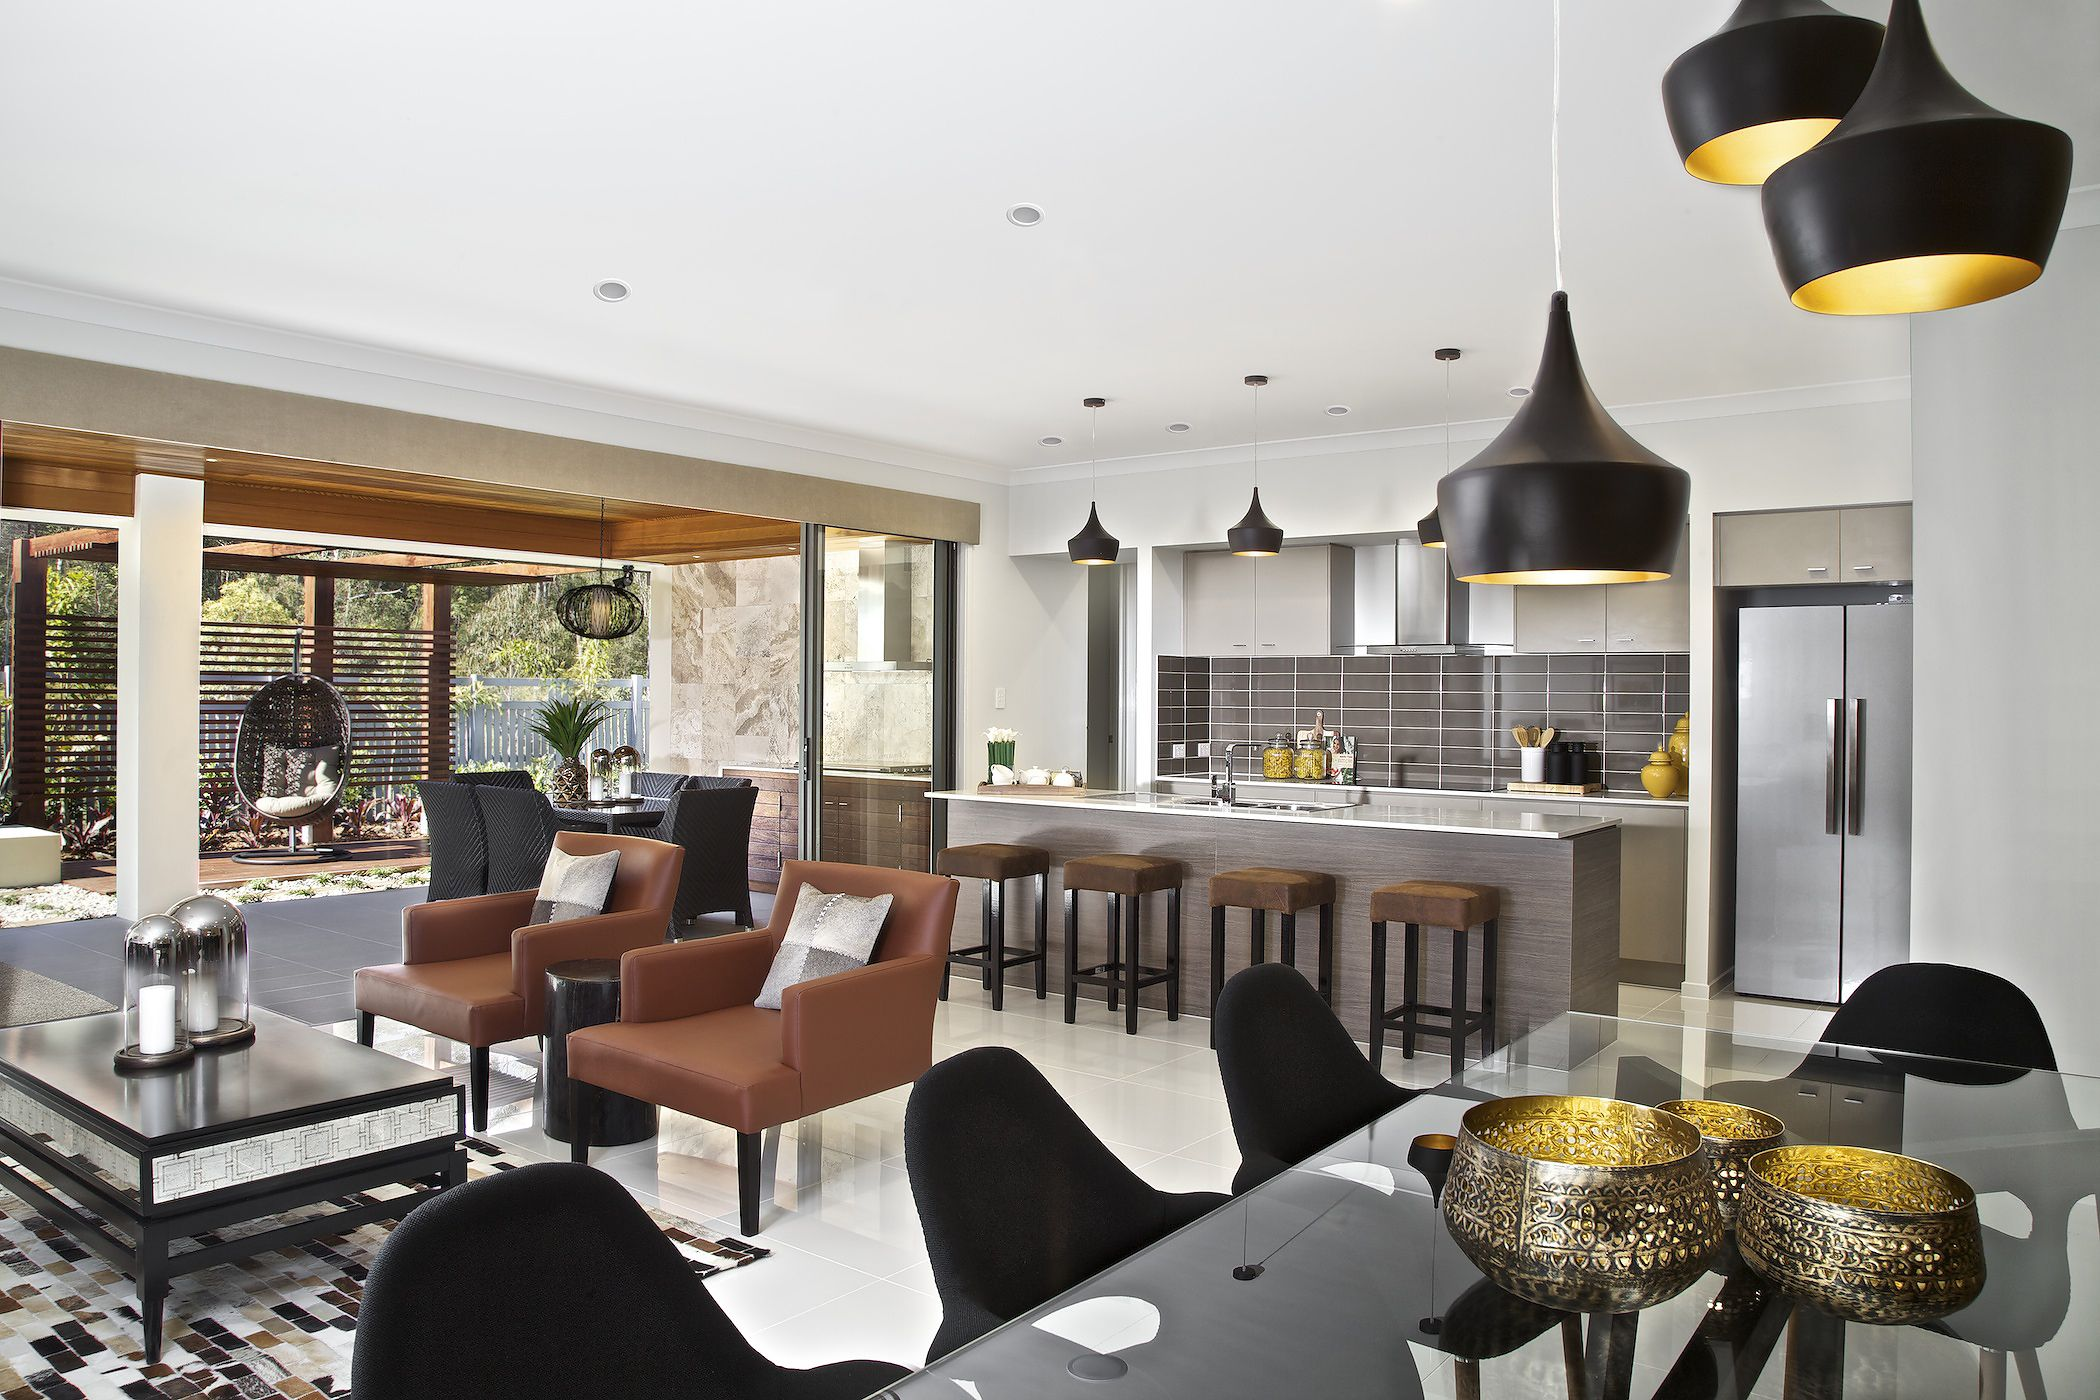 clarendon homes. killara 30. open plan living combining dining